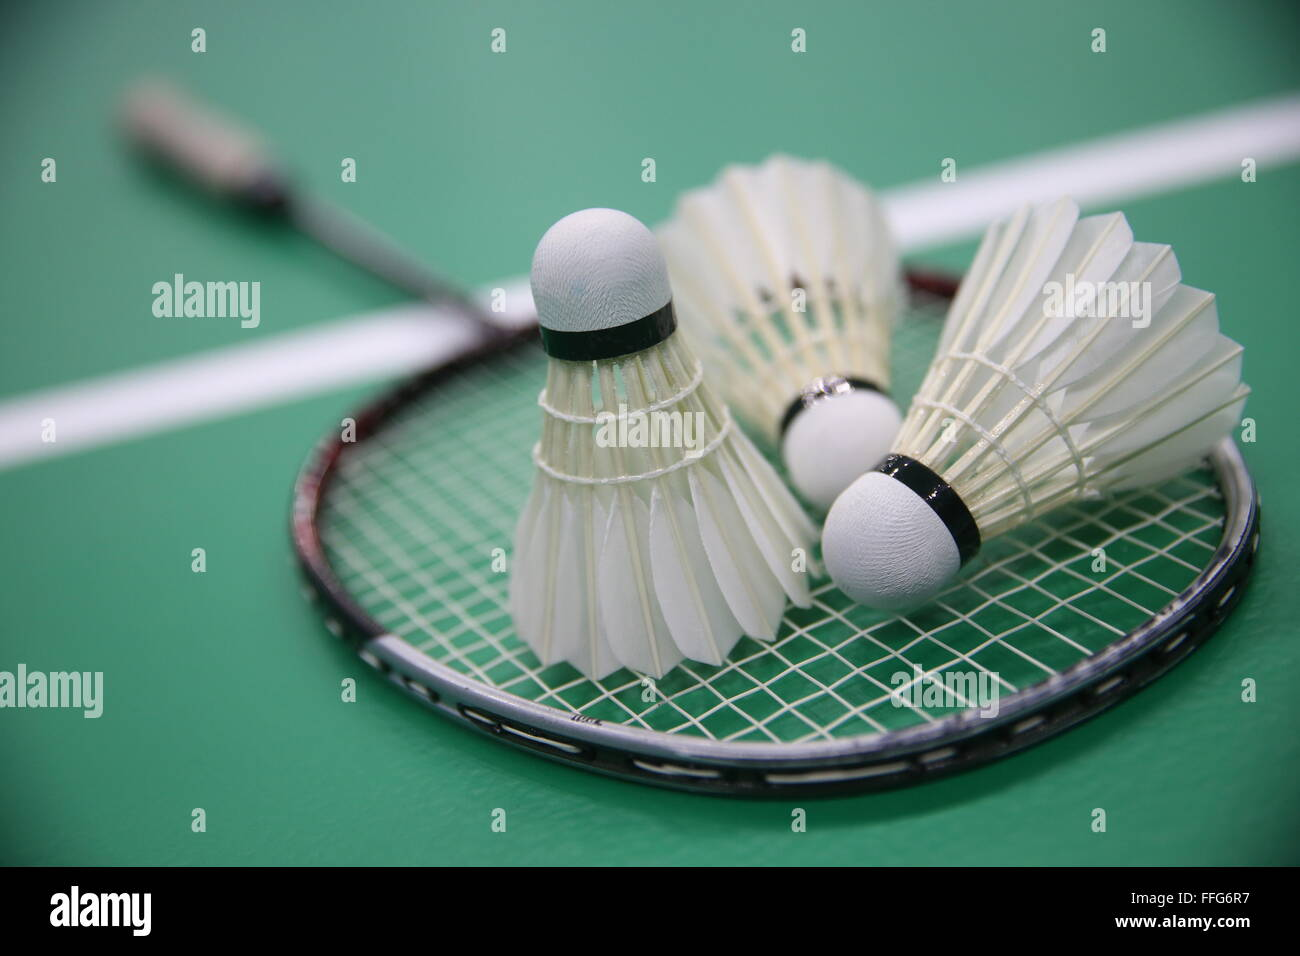 Kazan, Russia. 13th Feb, 2016. A badminton competition held as part of the opening of the Kazan Badminton Center. - Stock Image